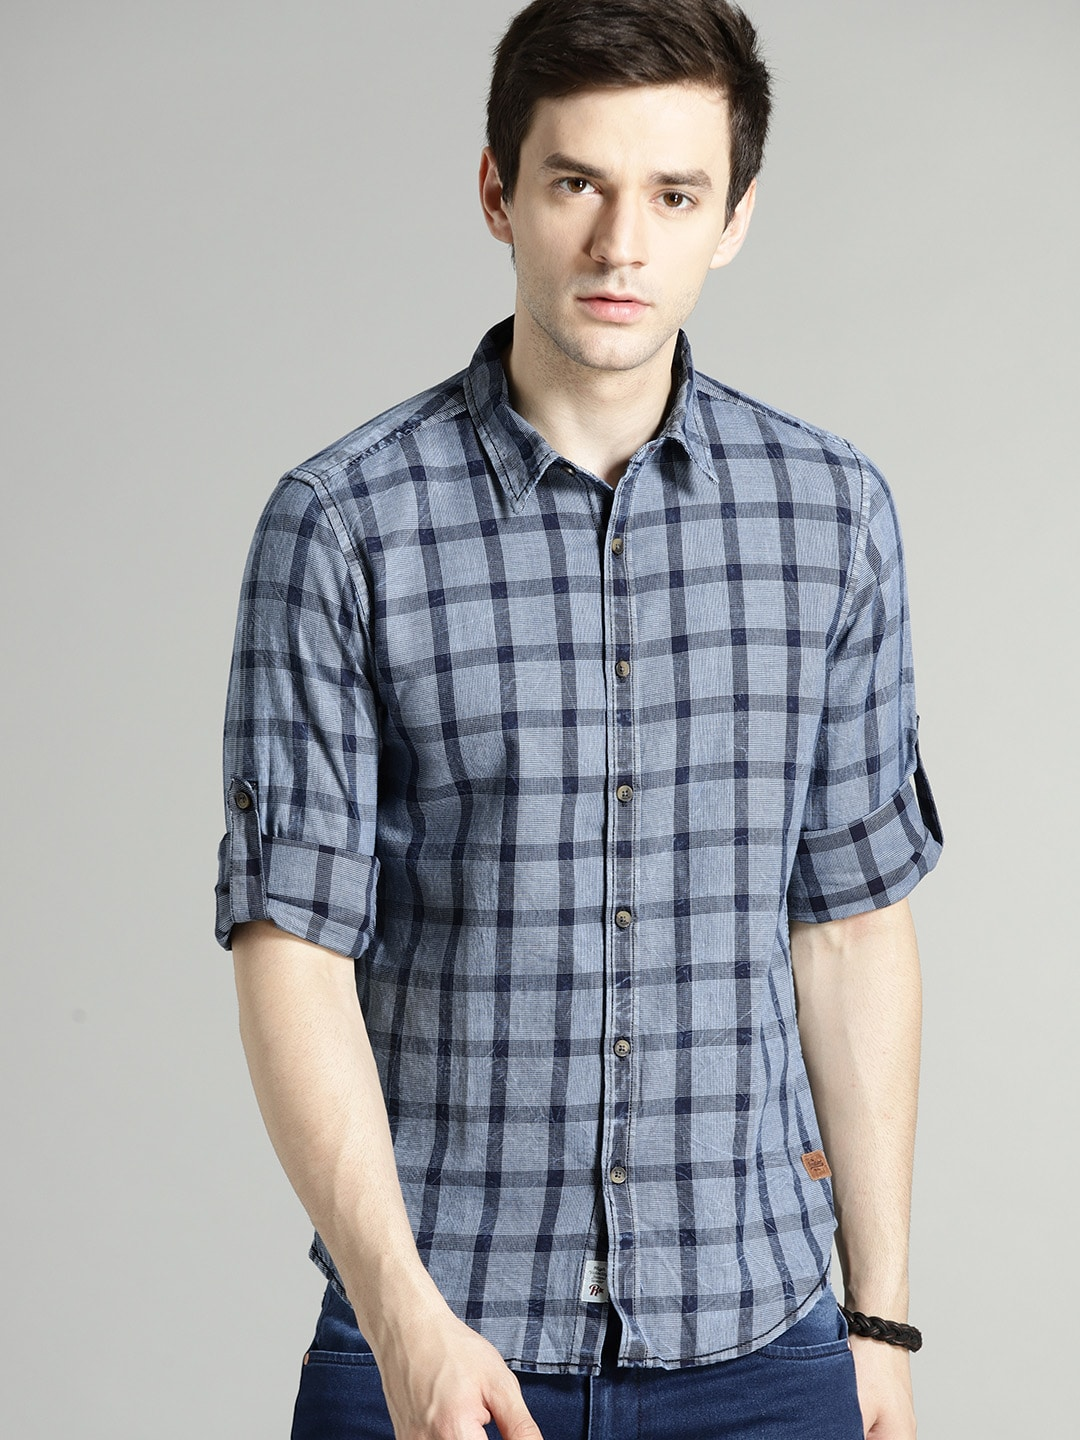 Buy Roadster Blue Regular Fit Checked Men's Casual Shirt At Best Price